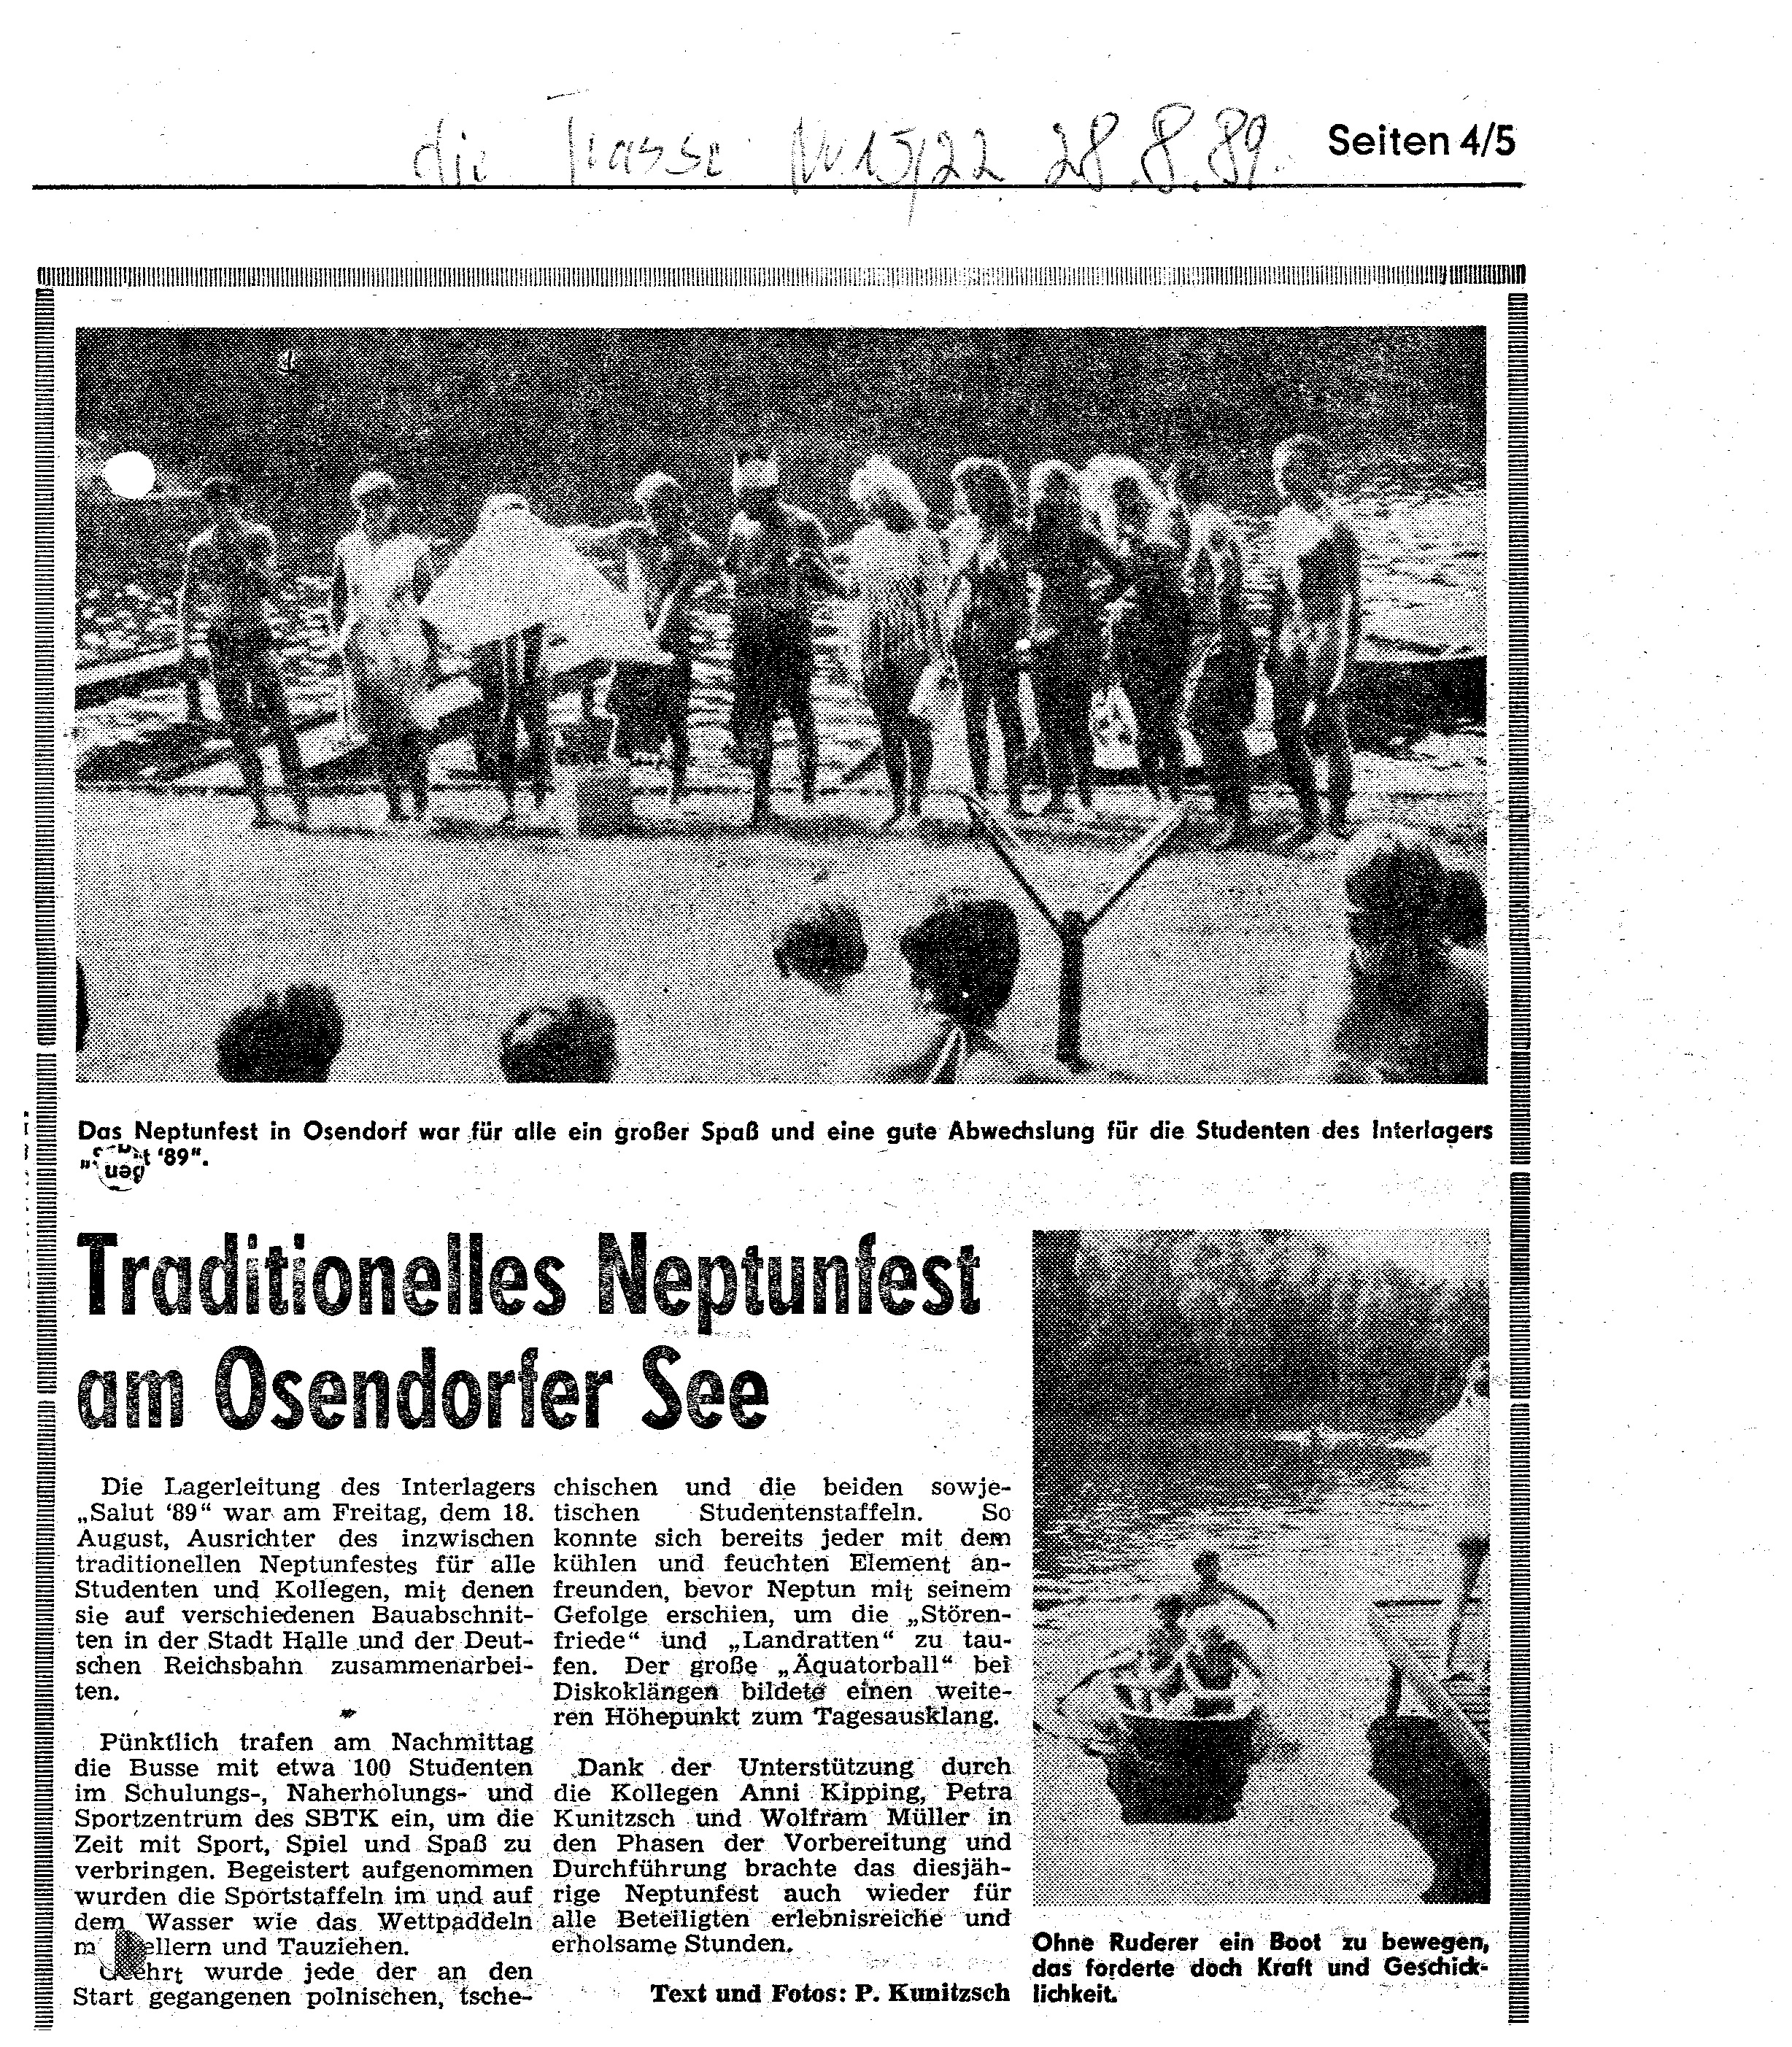 1989-08-28 Traditionelle Neptunfest am Osendorfer See